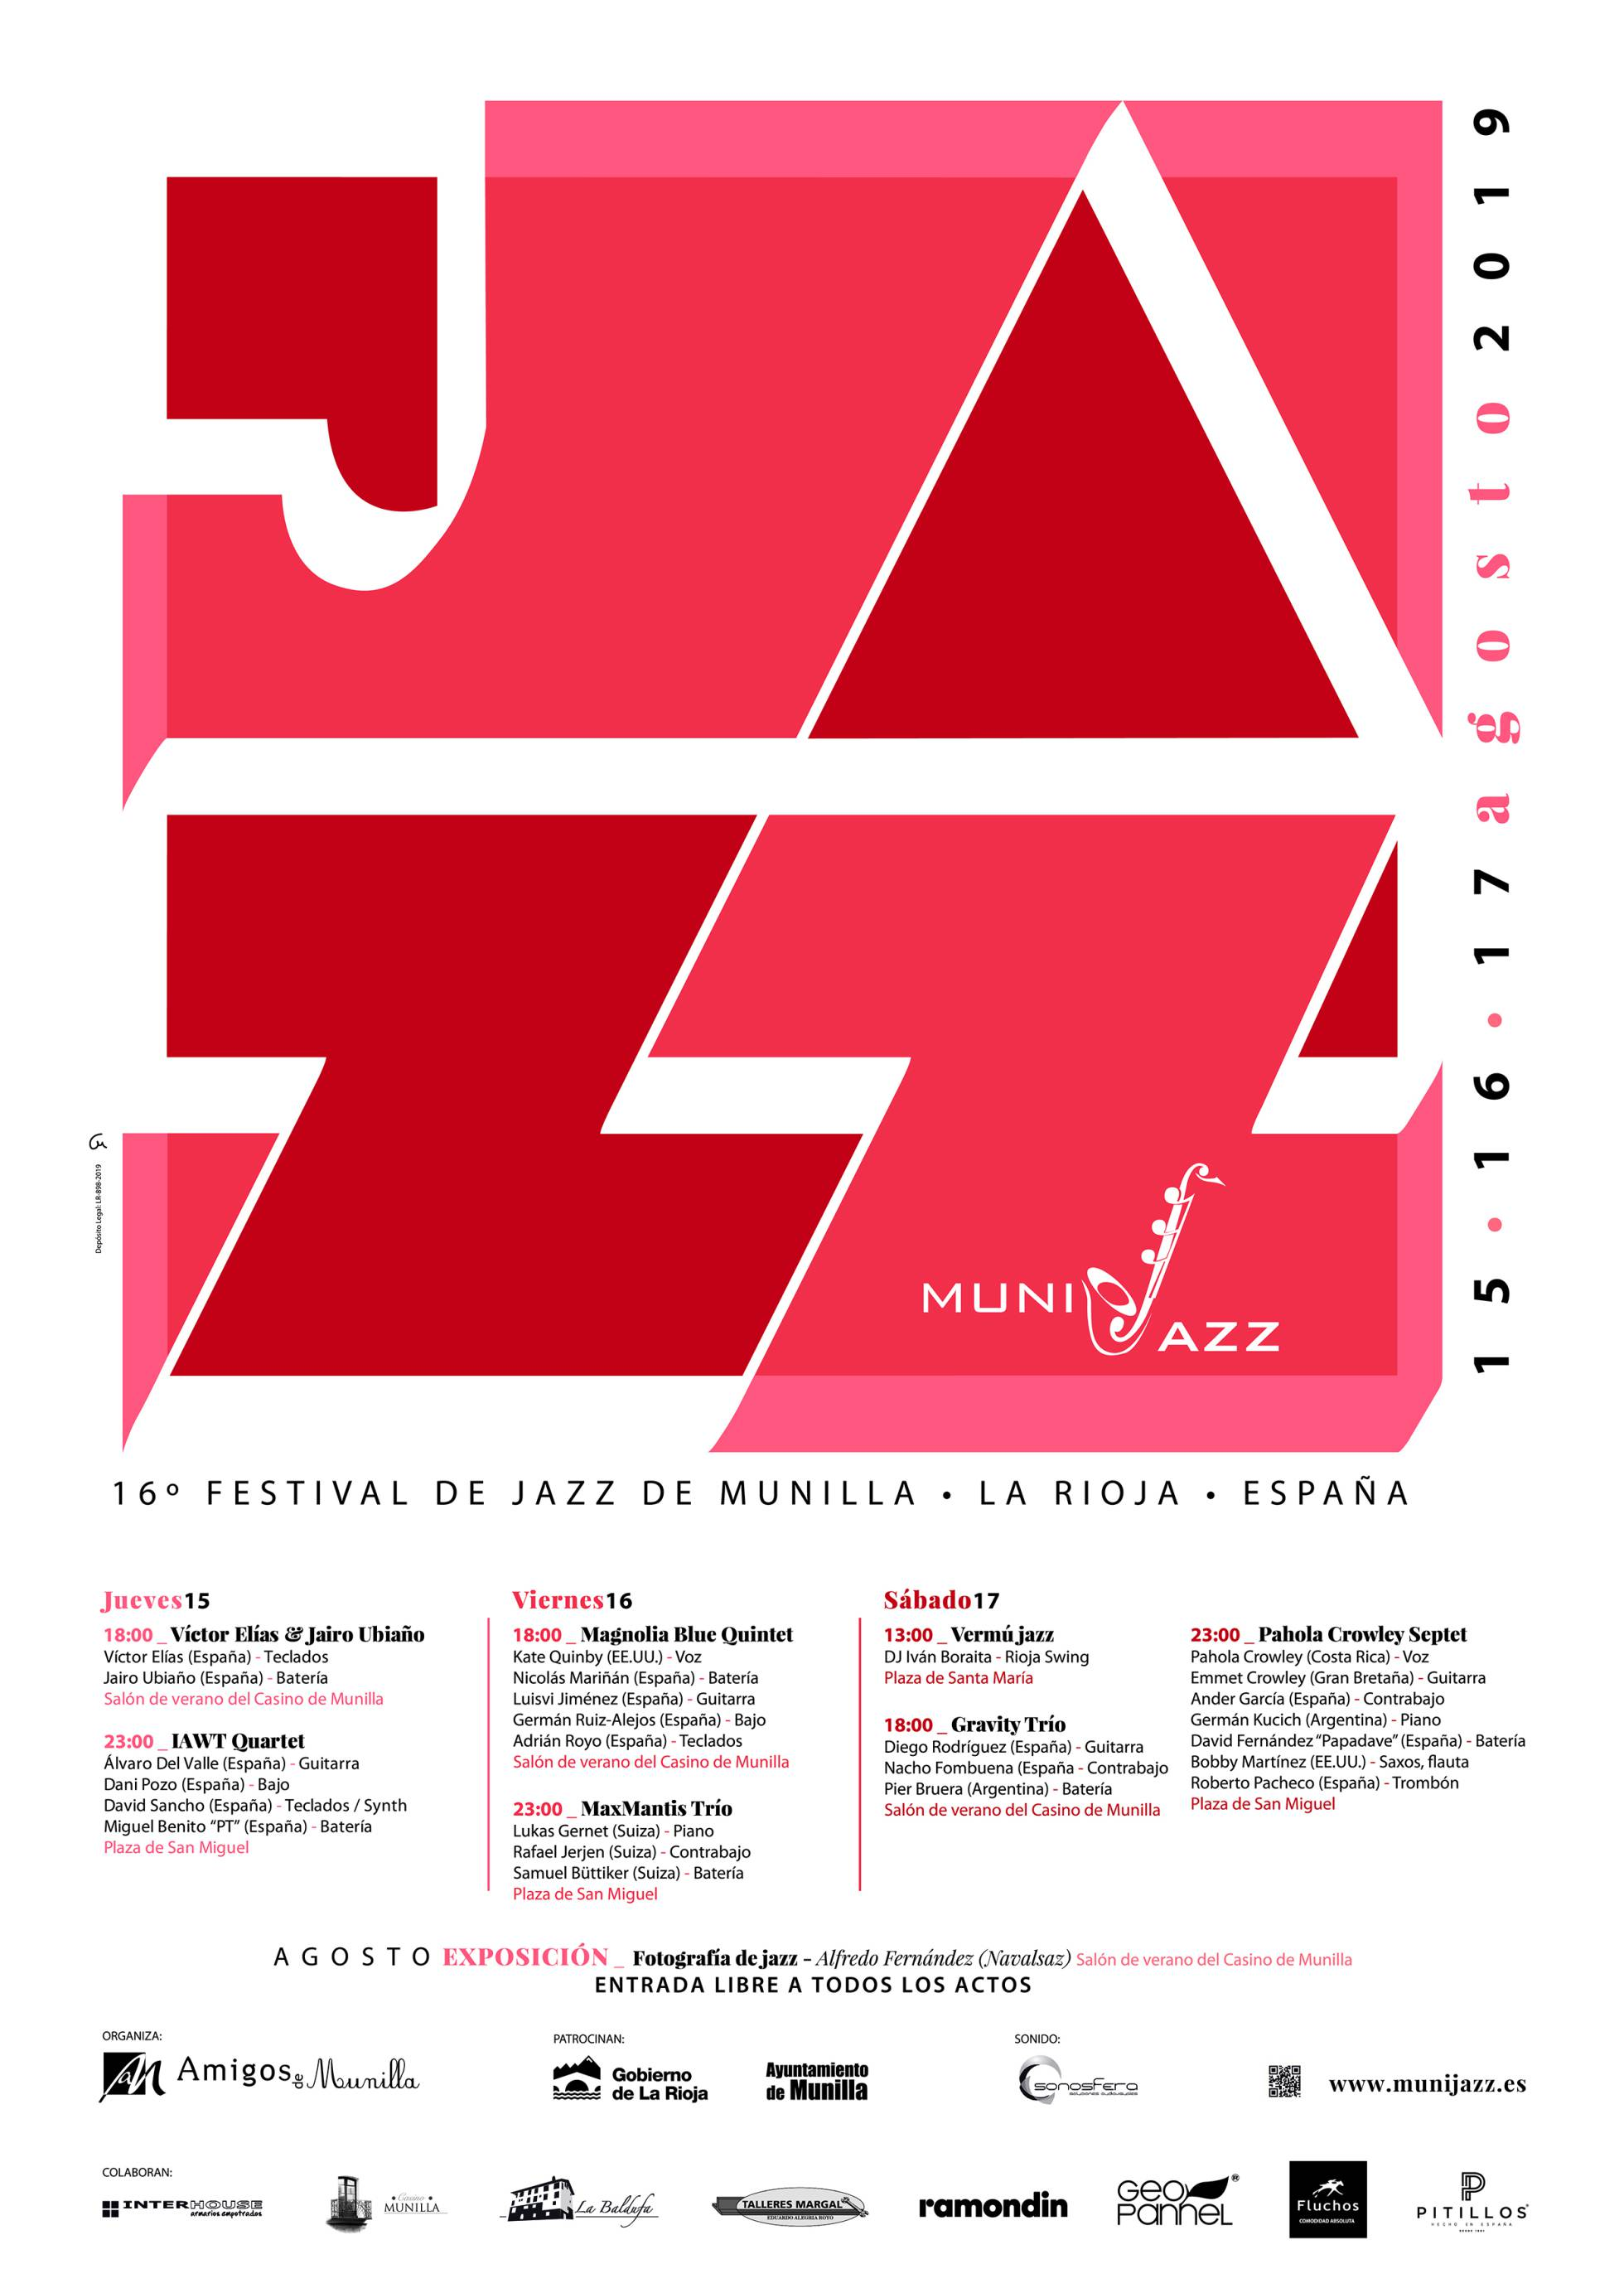 munijazz cartel 2019